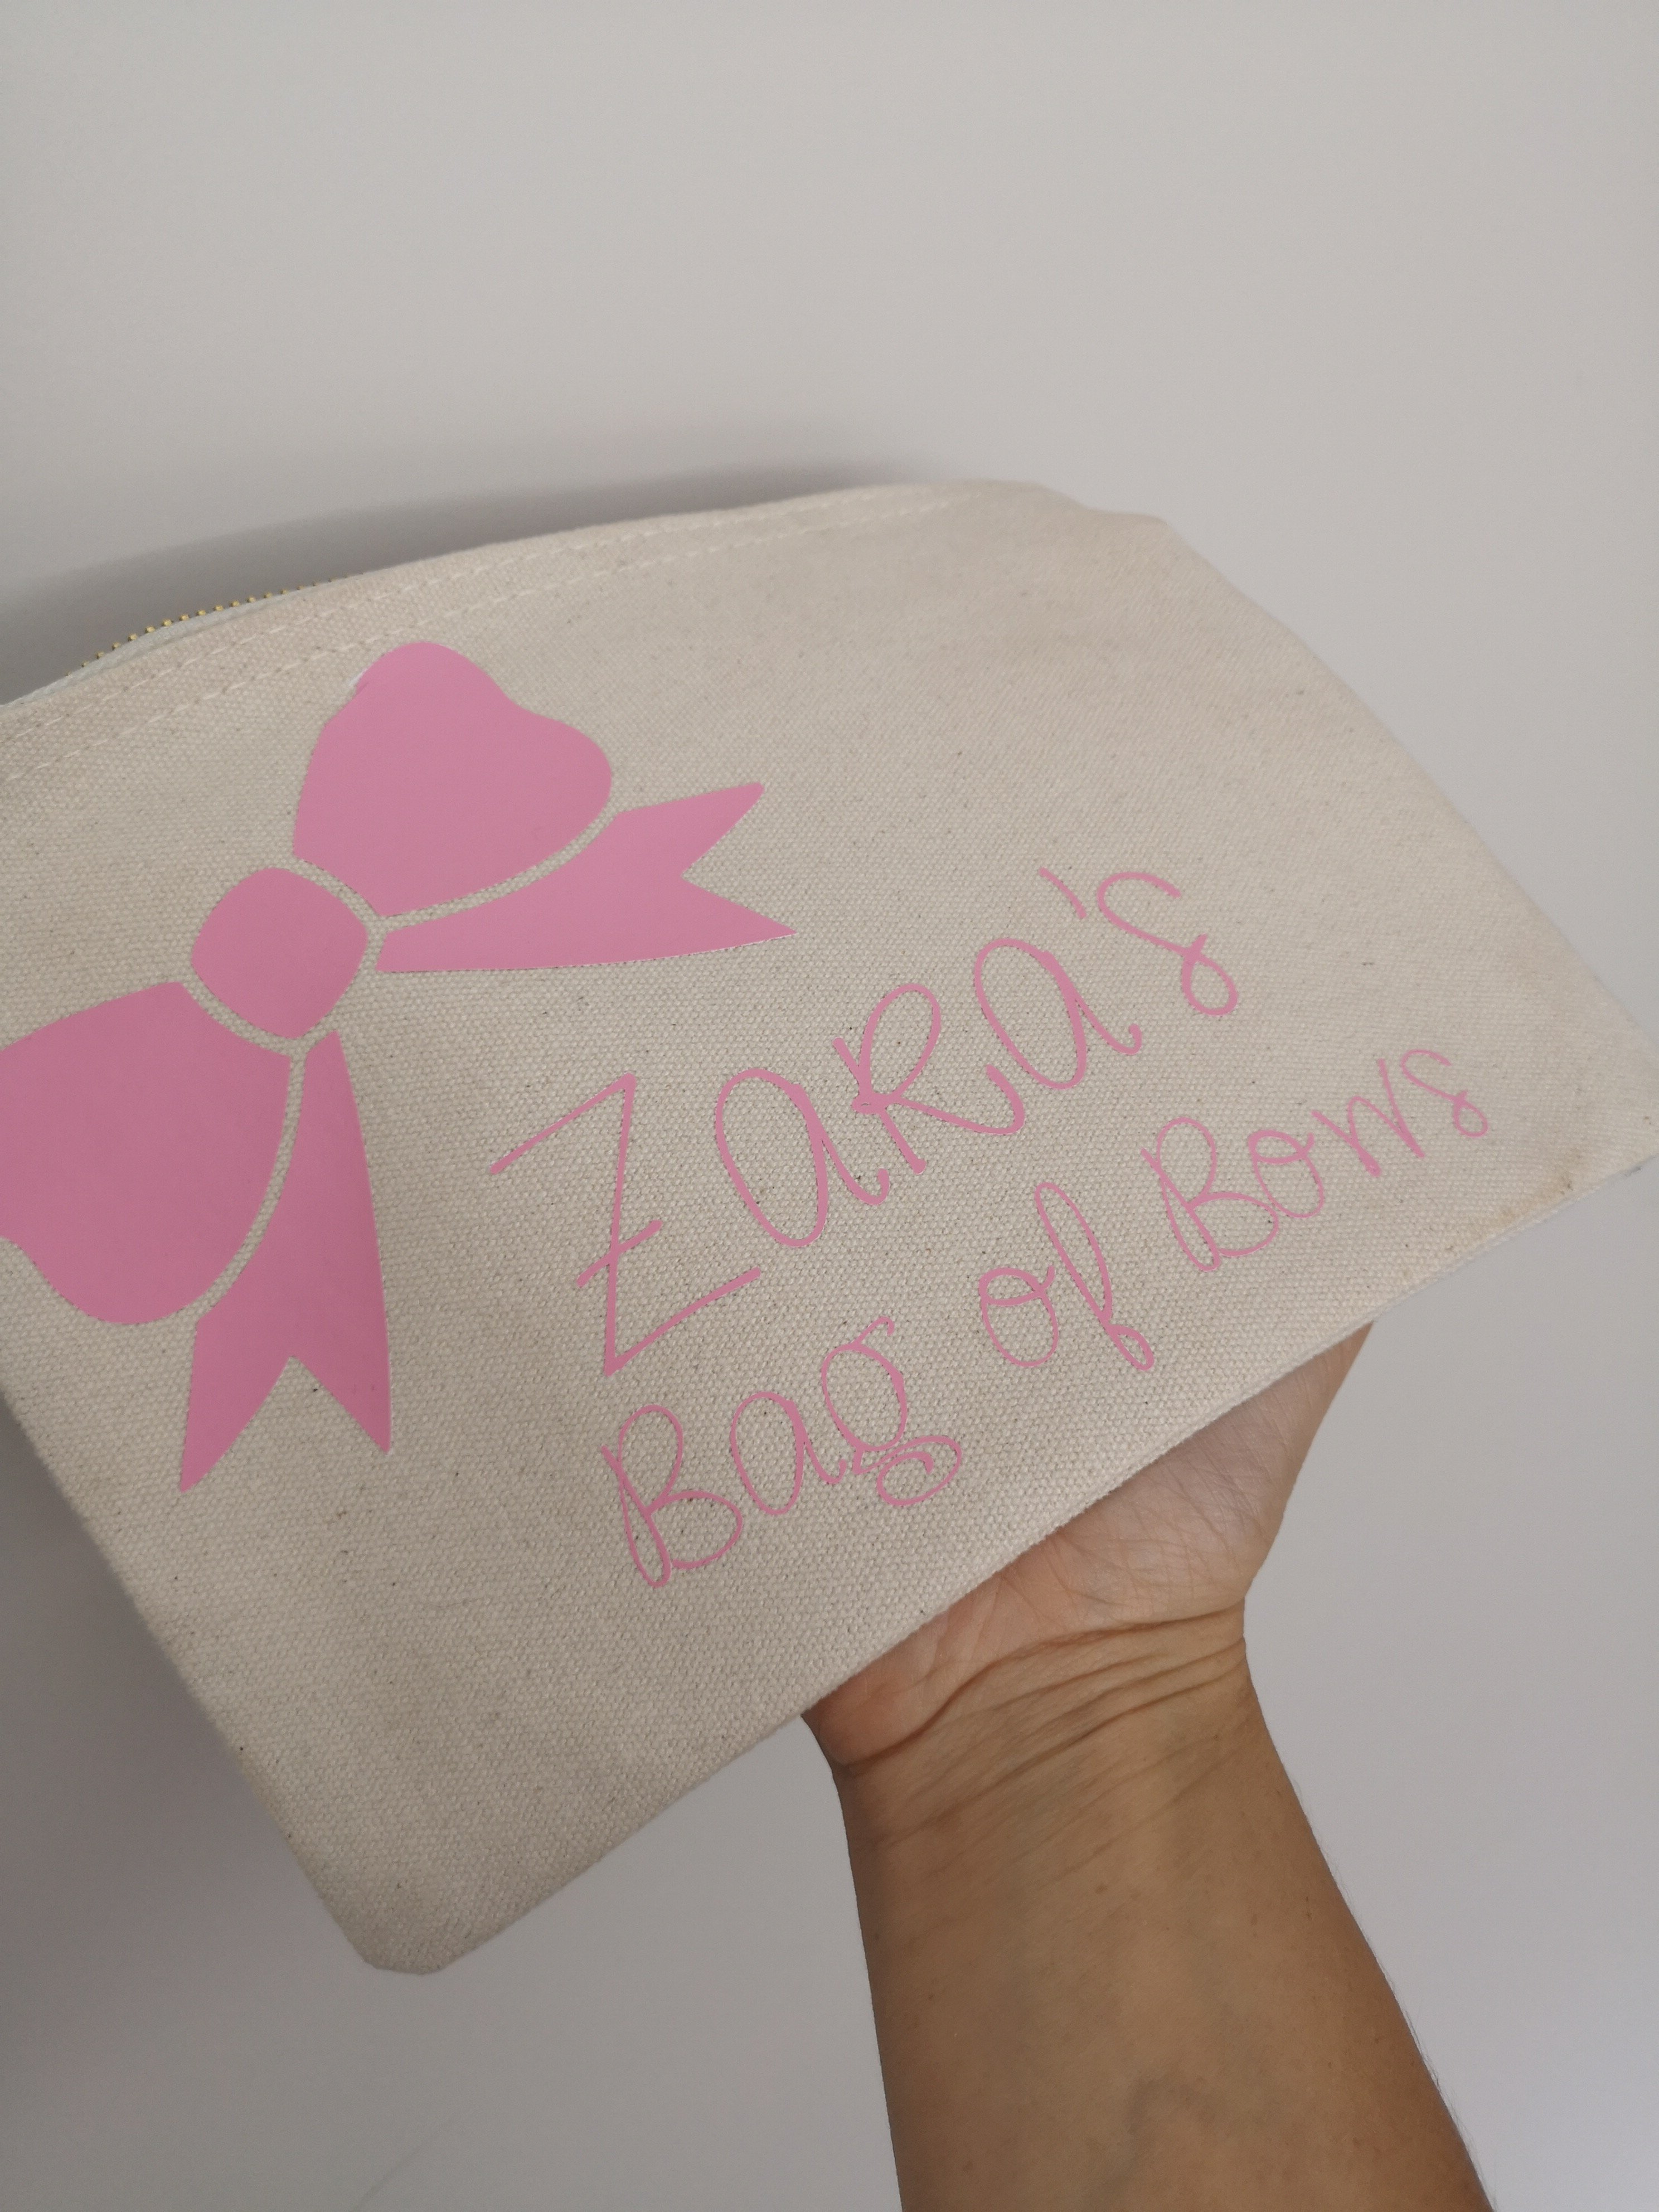 Bow Bag - Personalised